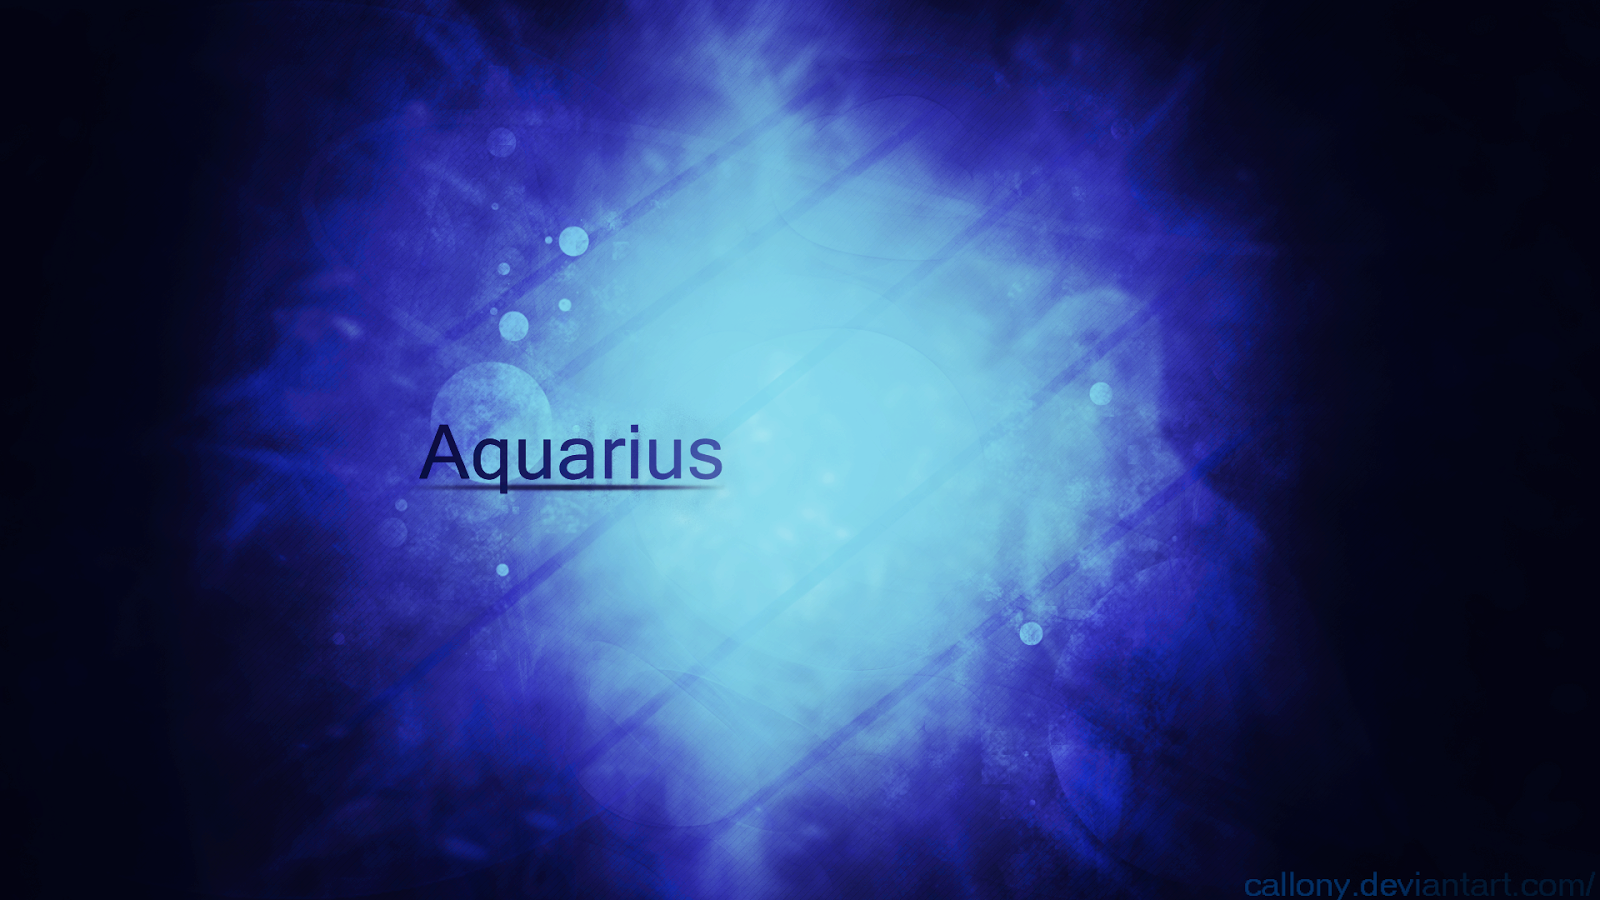 Aquarius on a blue background